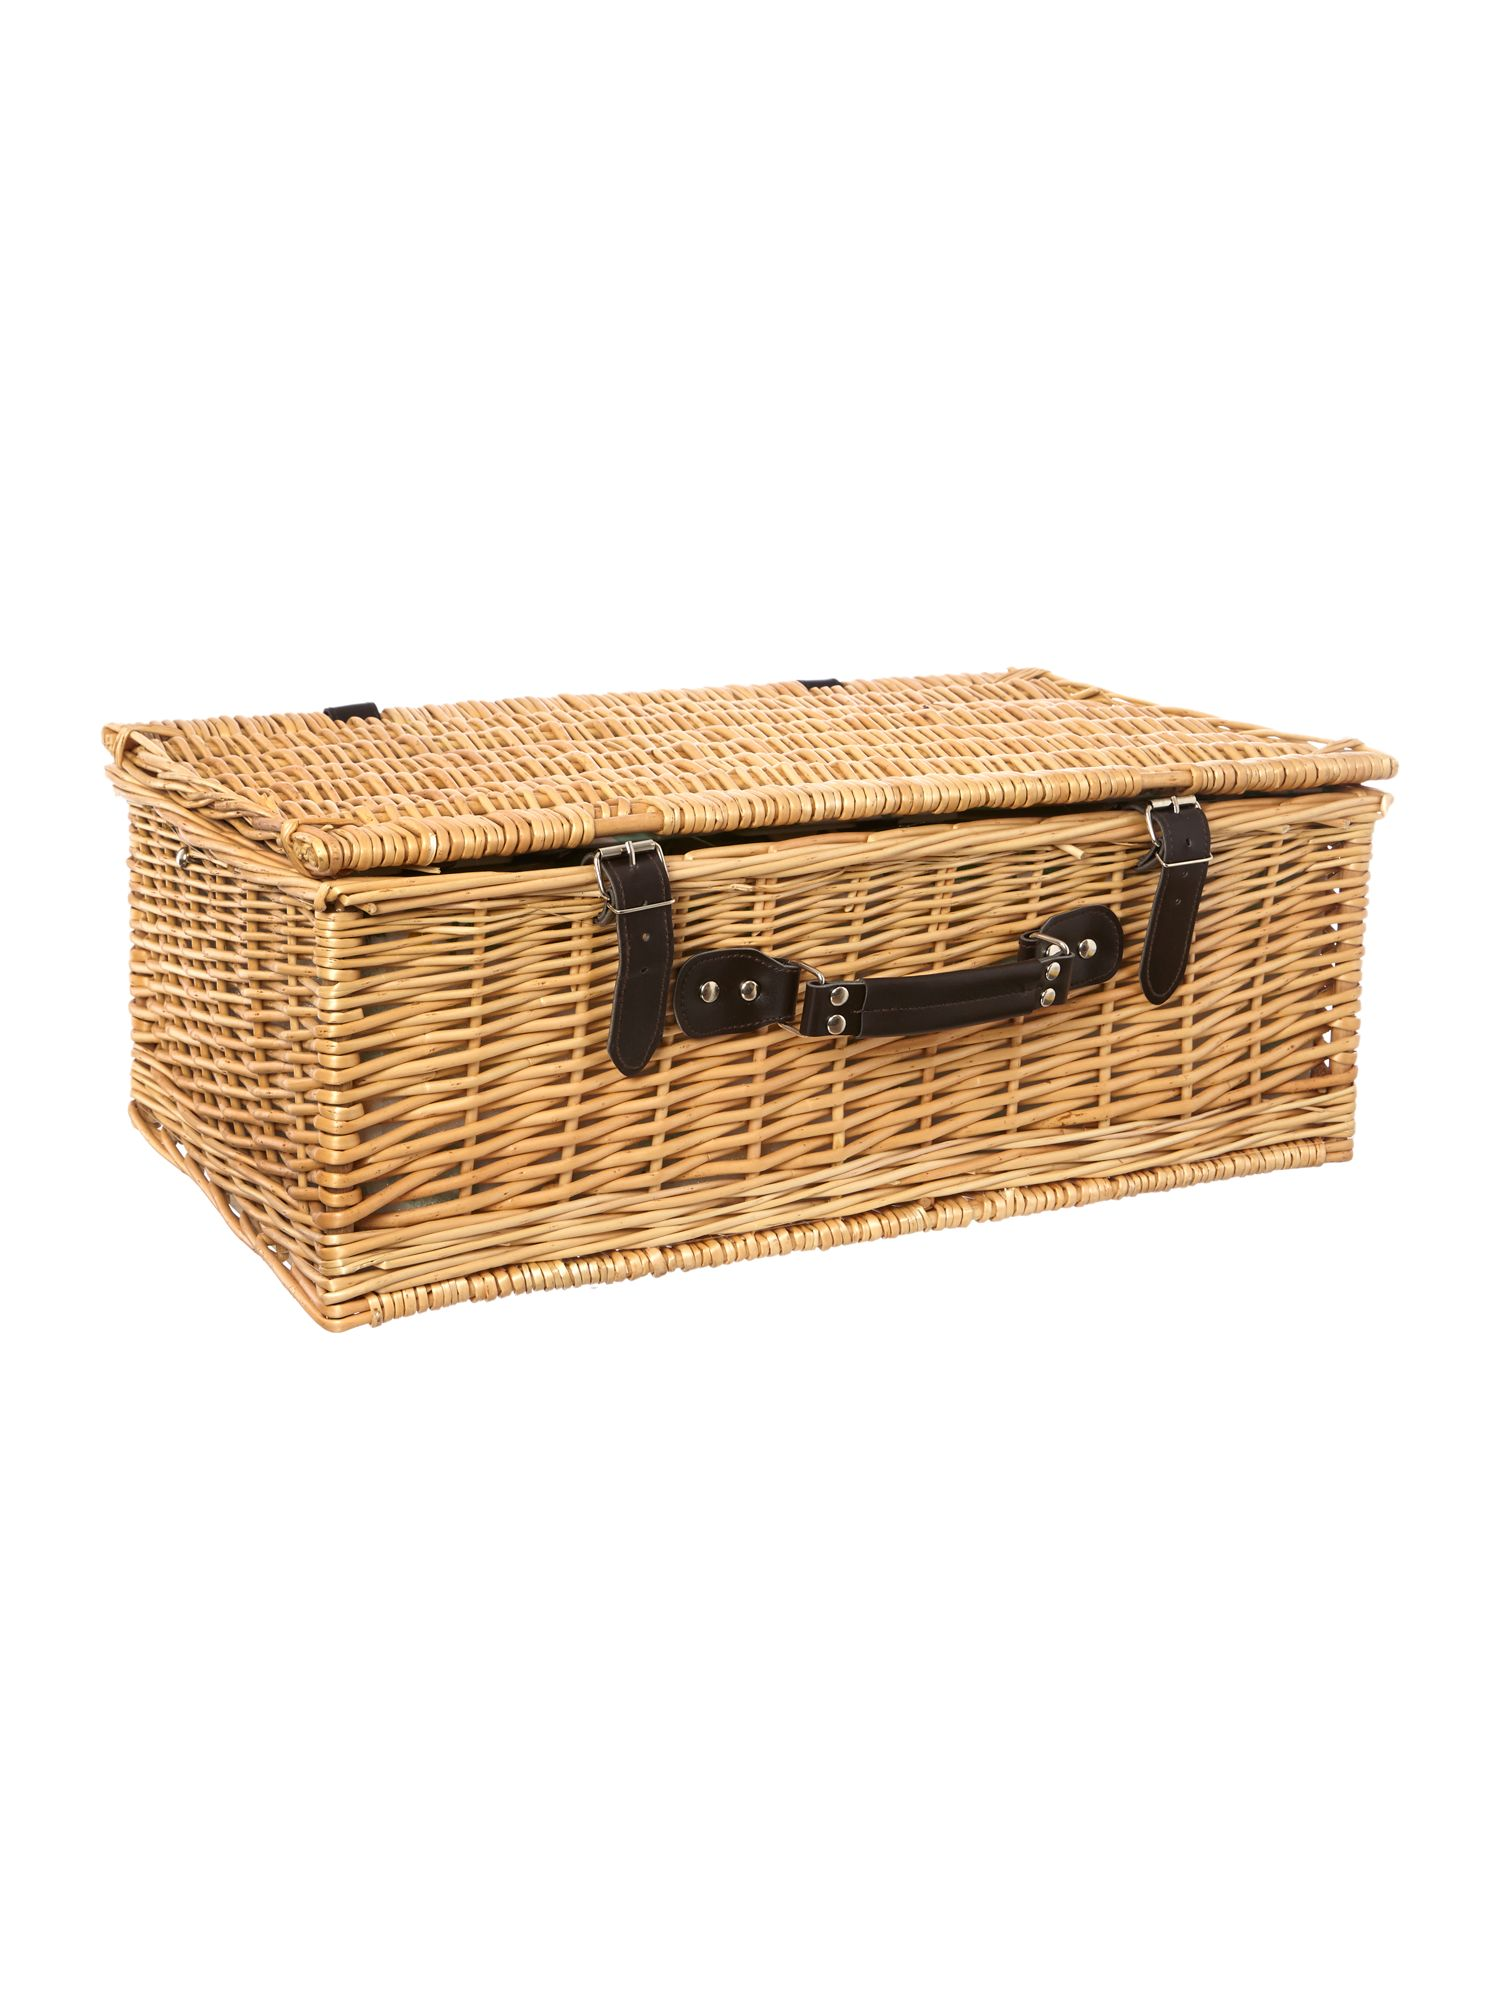 Urban explorer 4 person hamper